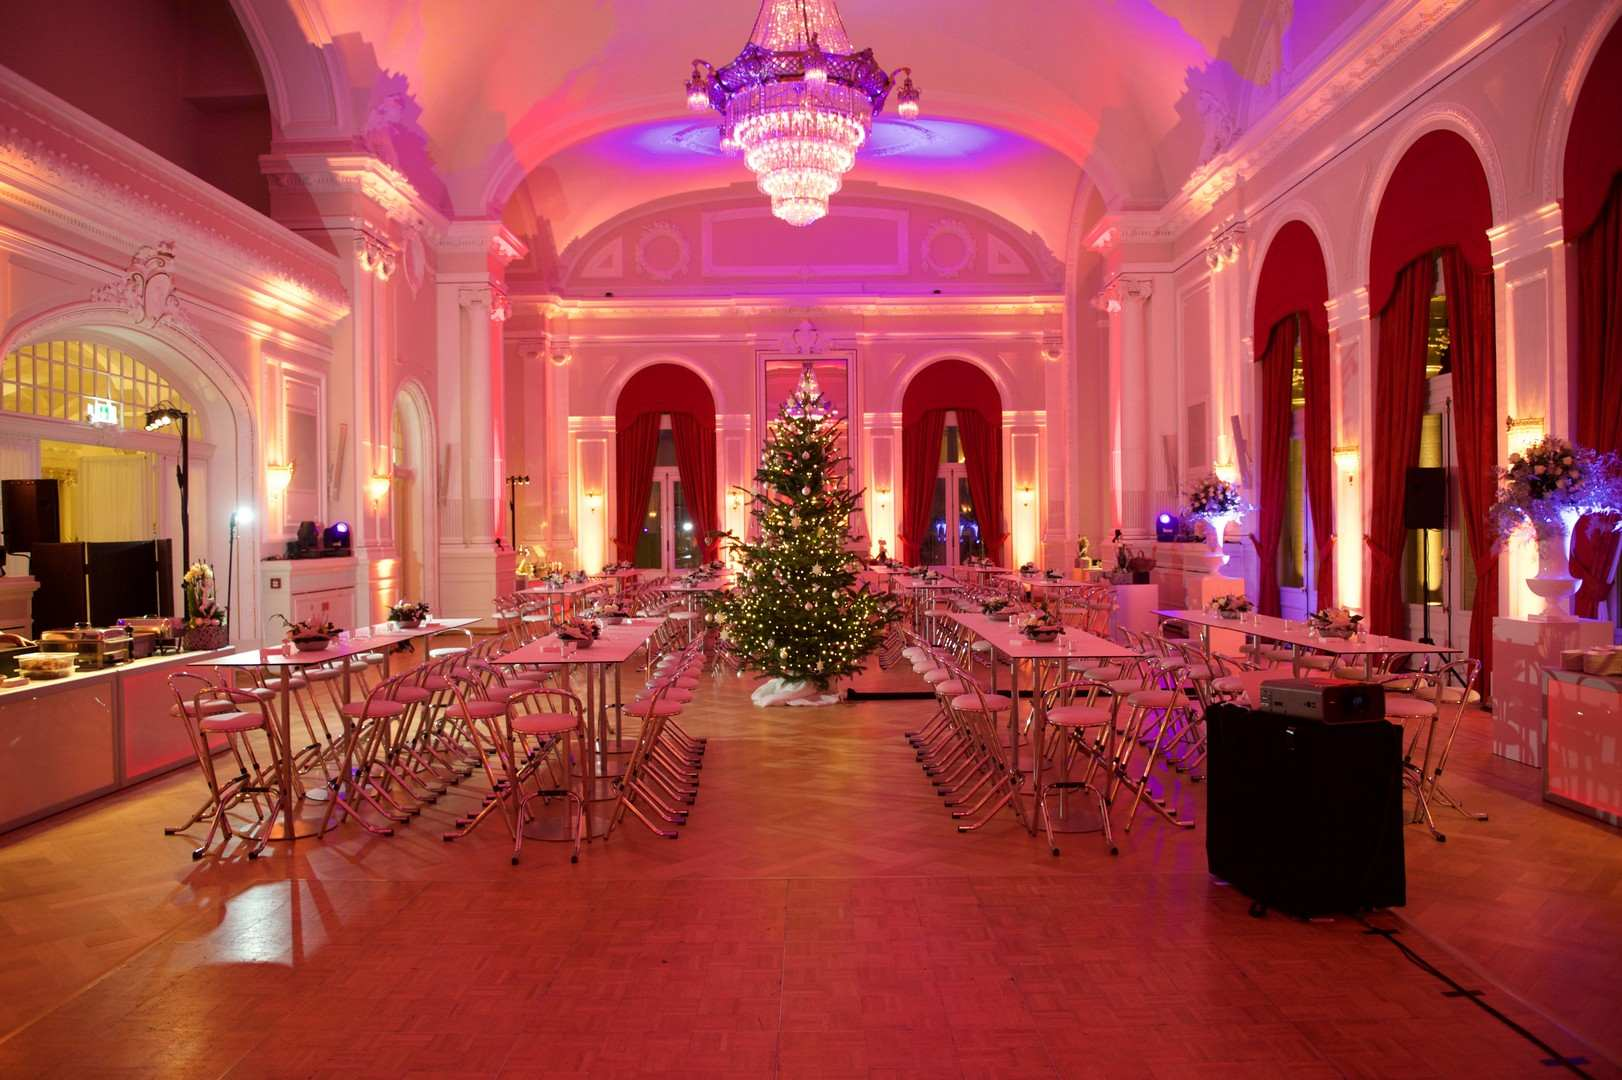 xmas-party-loyens-loeff-2014-project-carte-blanche-lux